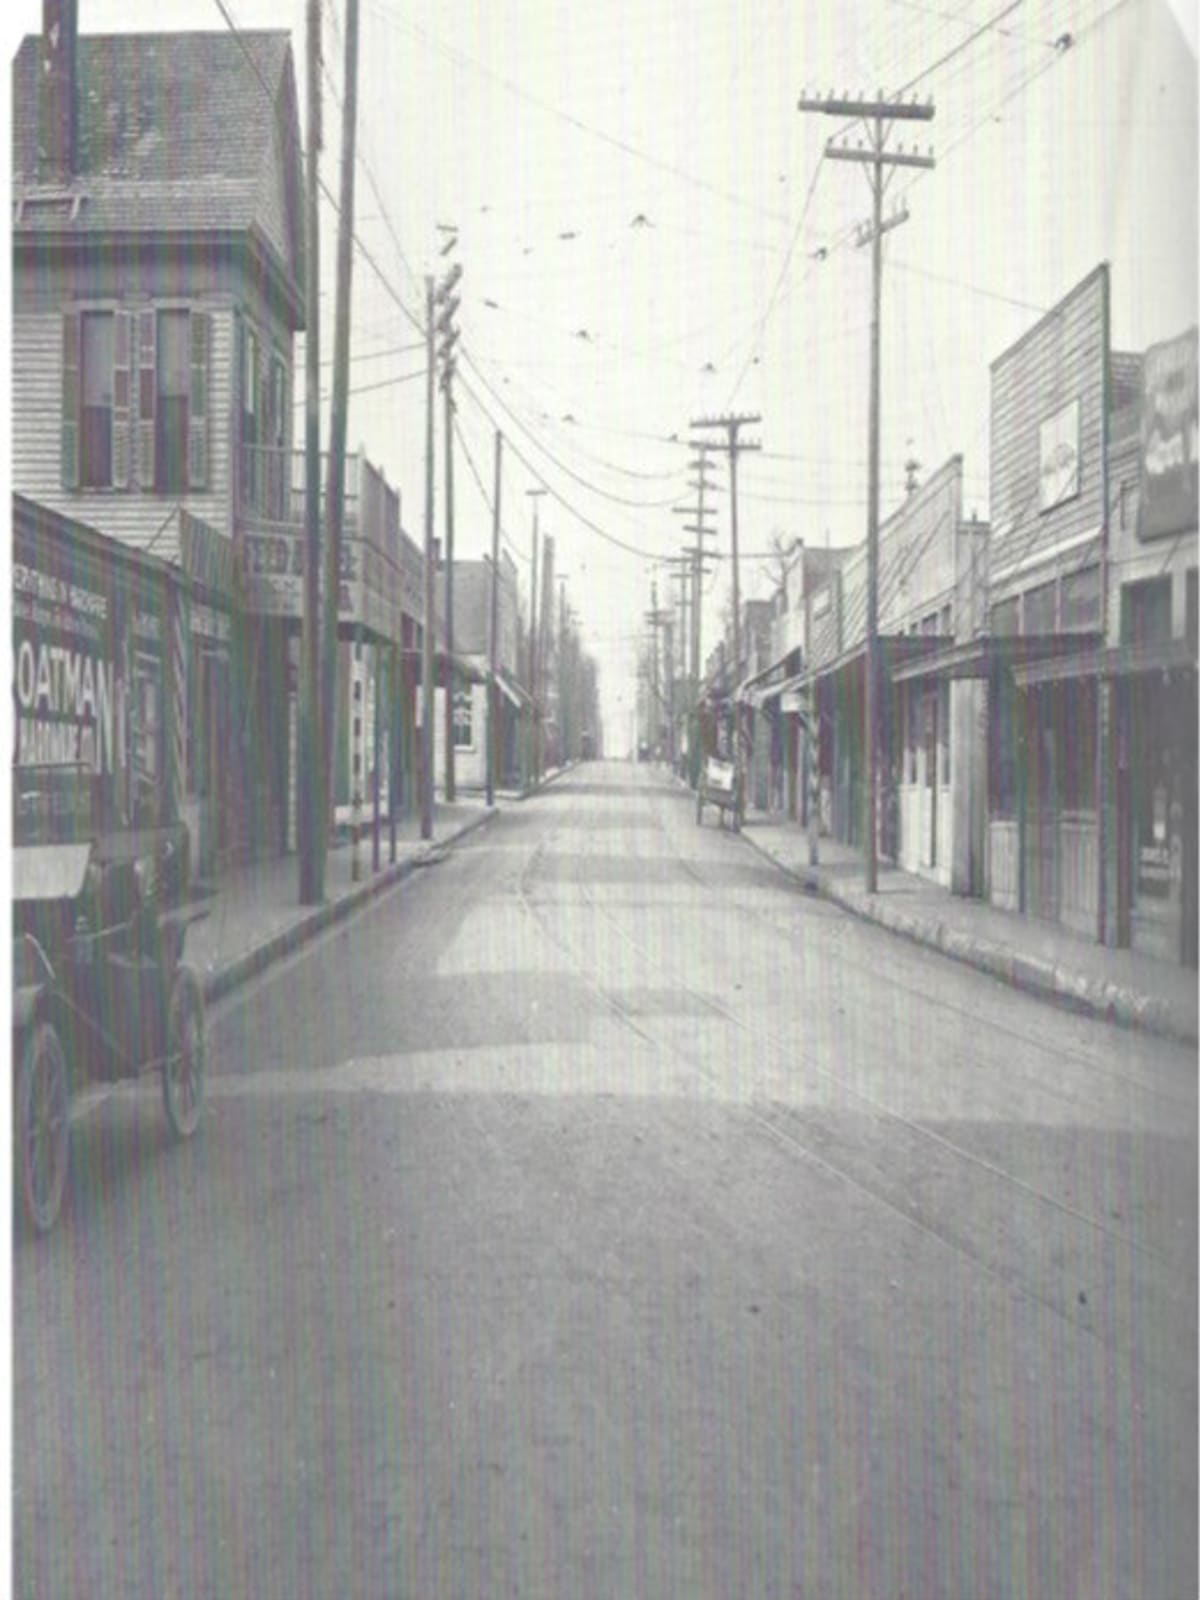 McKinney Avenue in Dallas in 1910